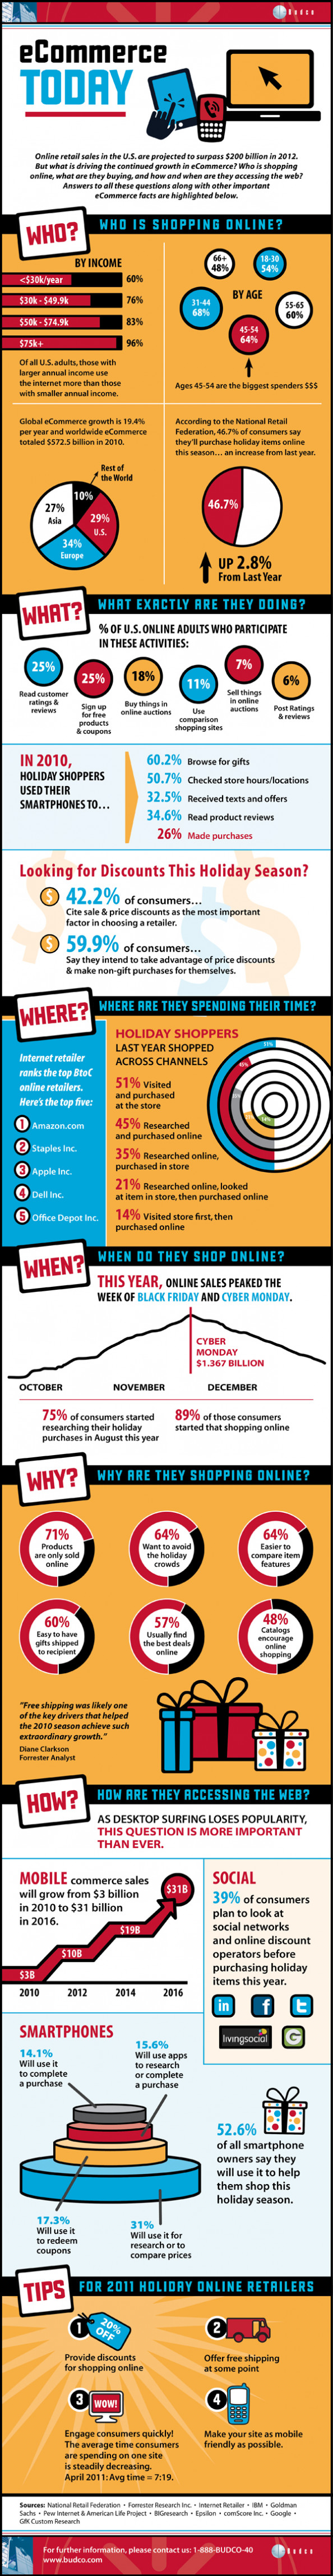 The Continual Rise of eCommerce Infographic